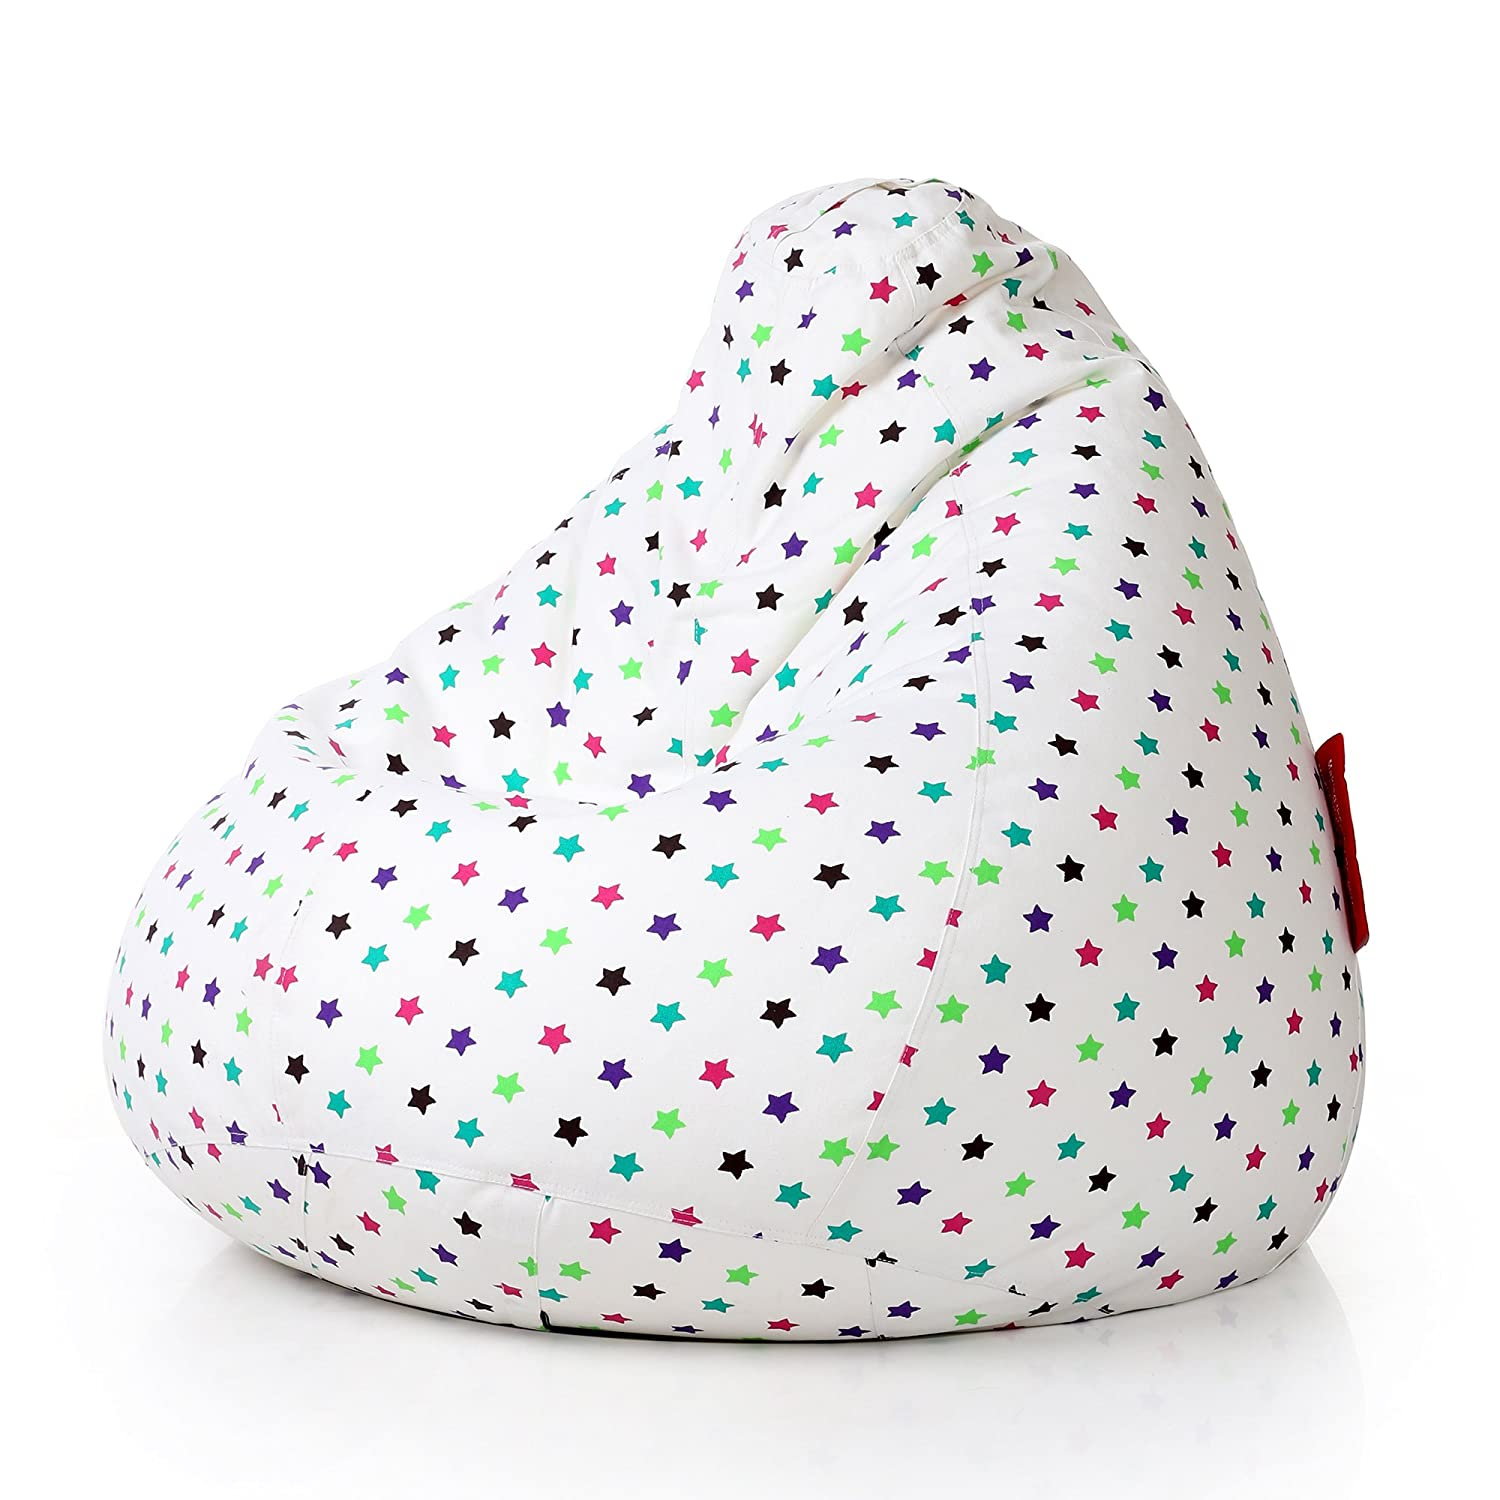 Style Homez Classic Cotton Canvas Star Printed Bean Bag XXXL Size Cover Only